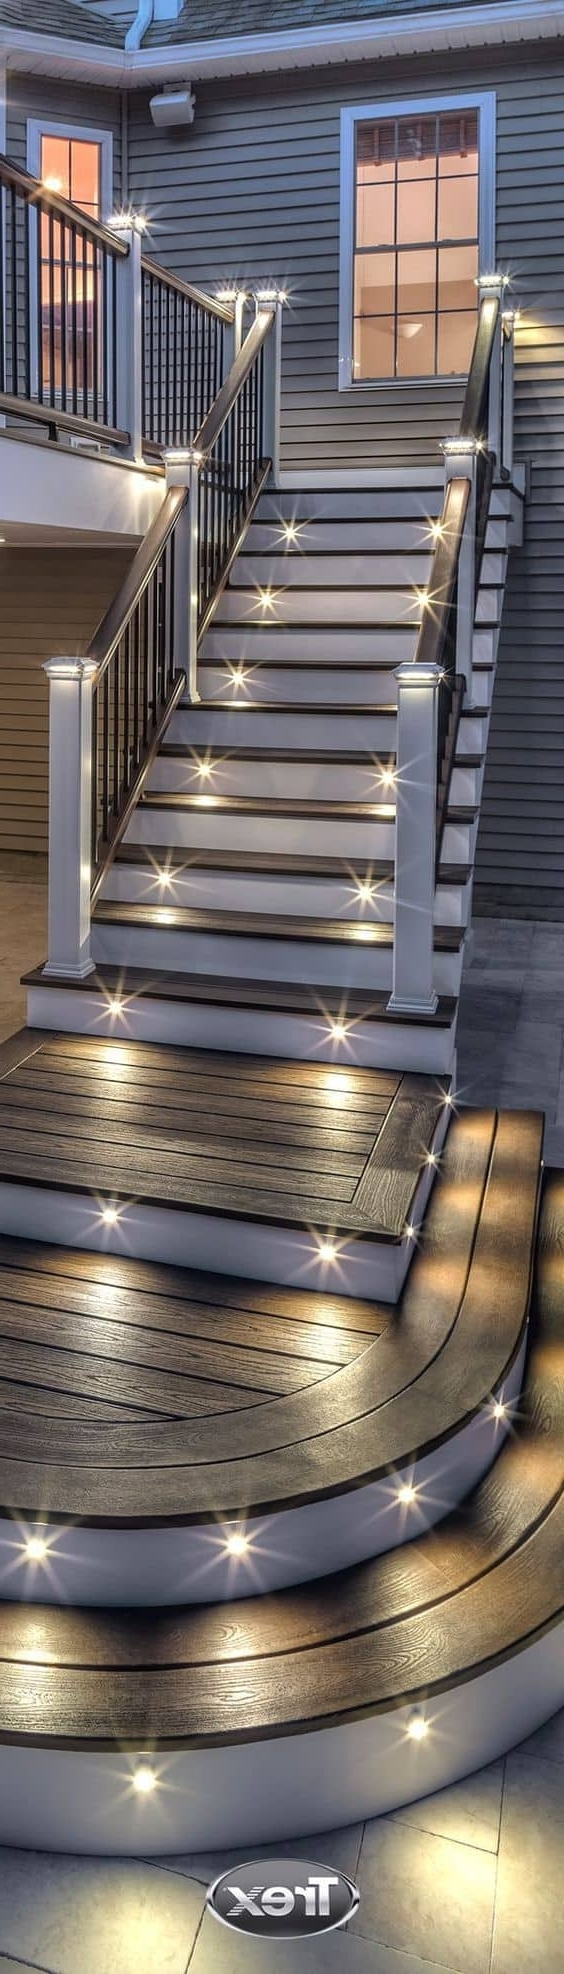 27 Outdoor Step Lighting Ideas That Will Amaze You With Regard To 2018 Contemporary Led Post Lights For Mini Garden (View 2 of 20)